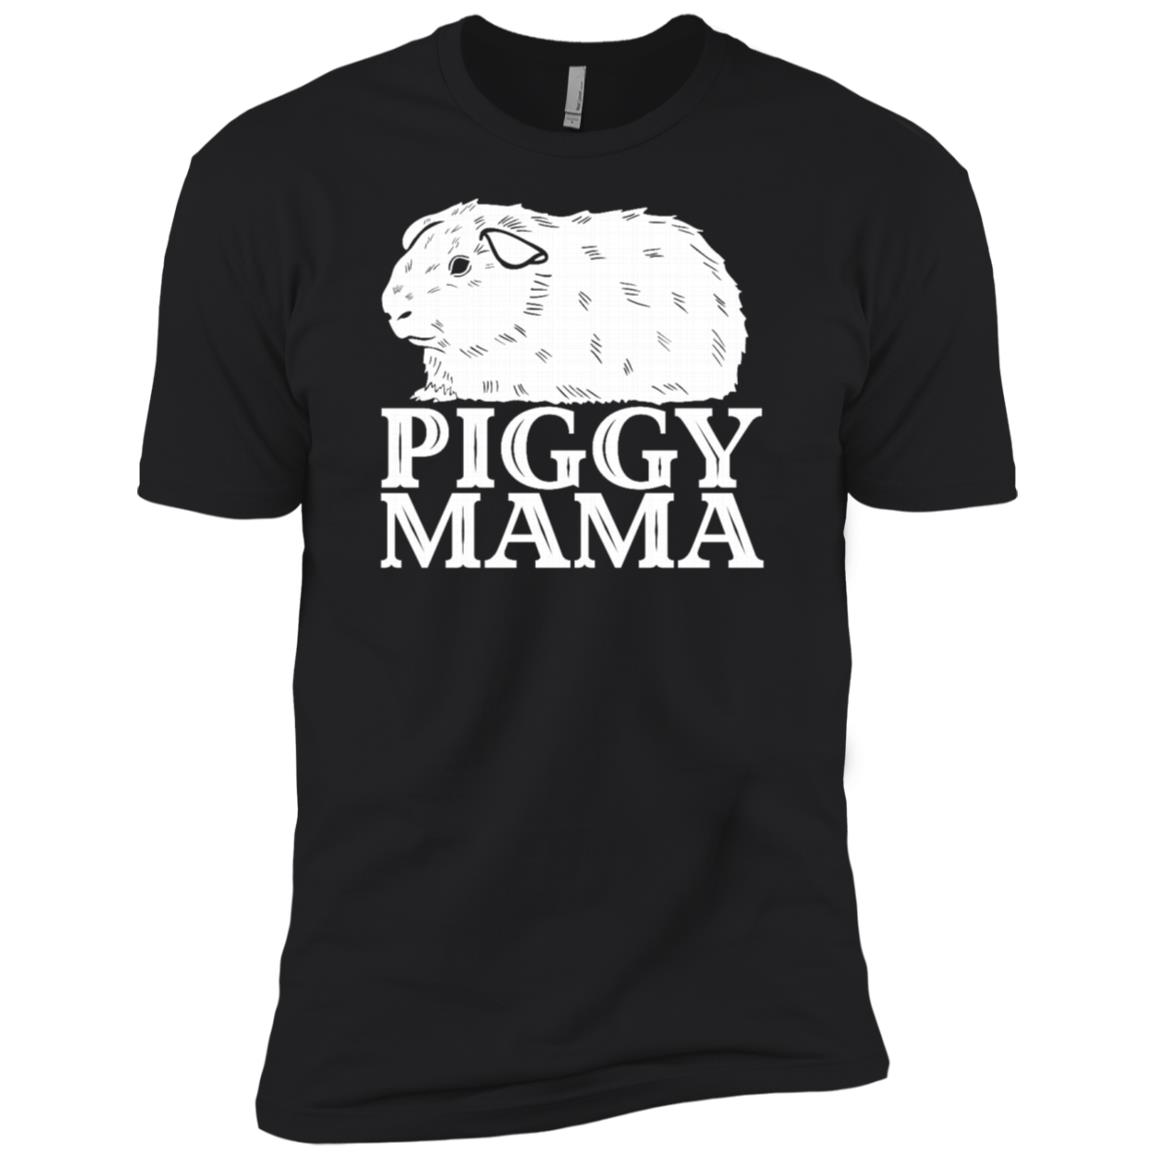 Guinea Pig Piggy Mama Cute Cavy Pet Love Men Short Sleeve T-Shirt